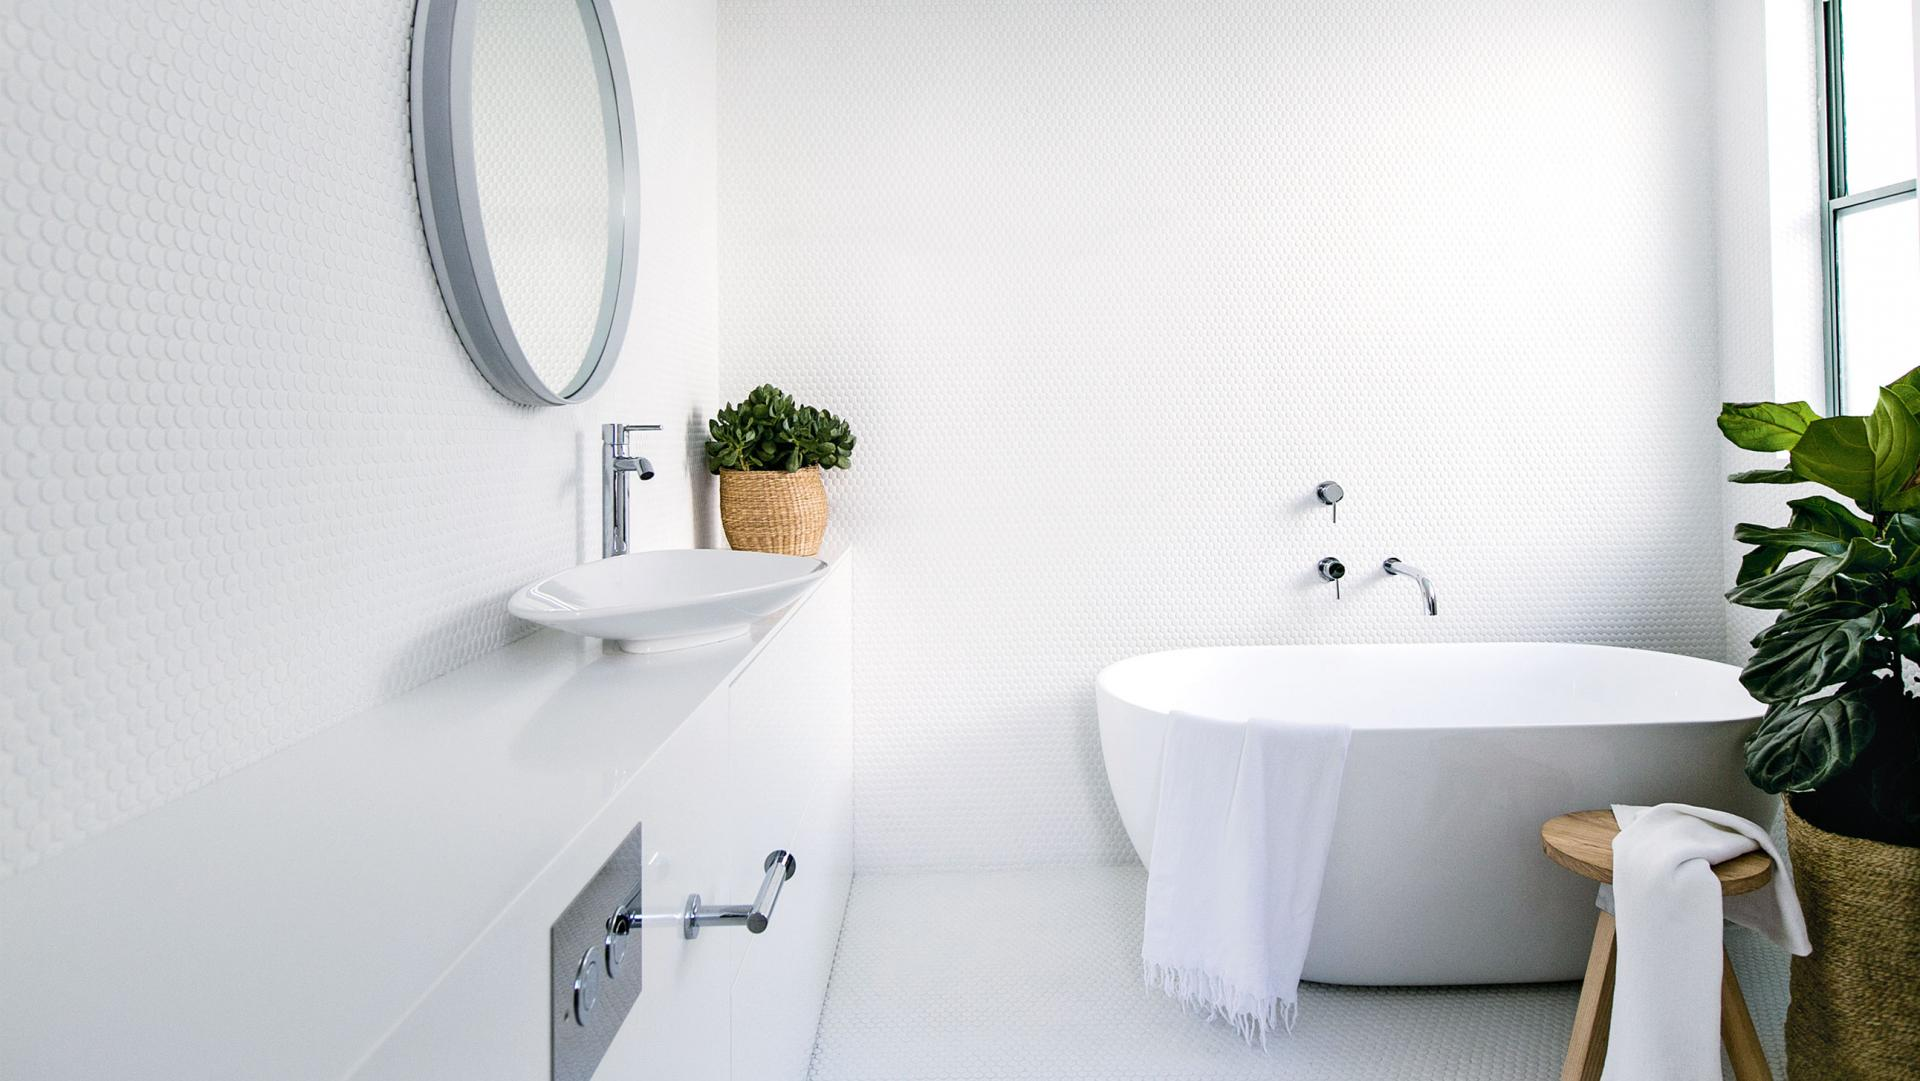 Switch To Some Simple Yet Stylish Bathroom Renovation Ideas